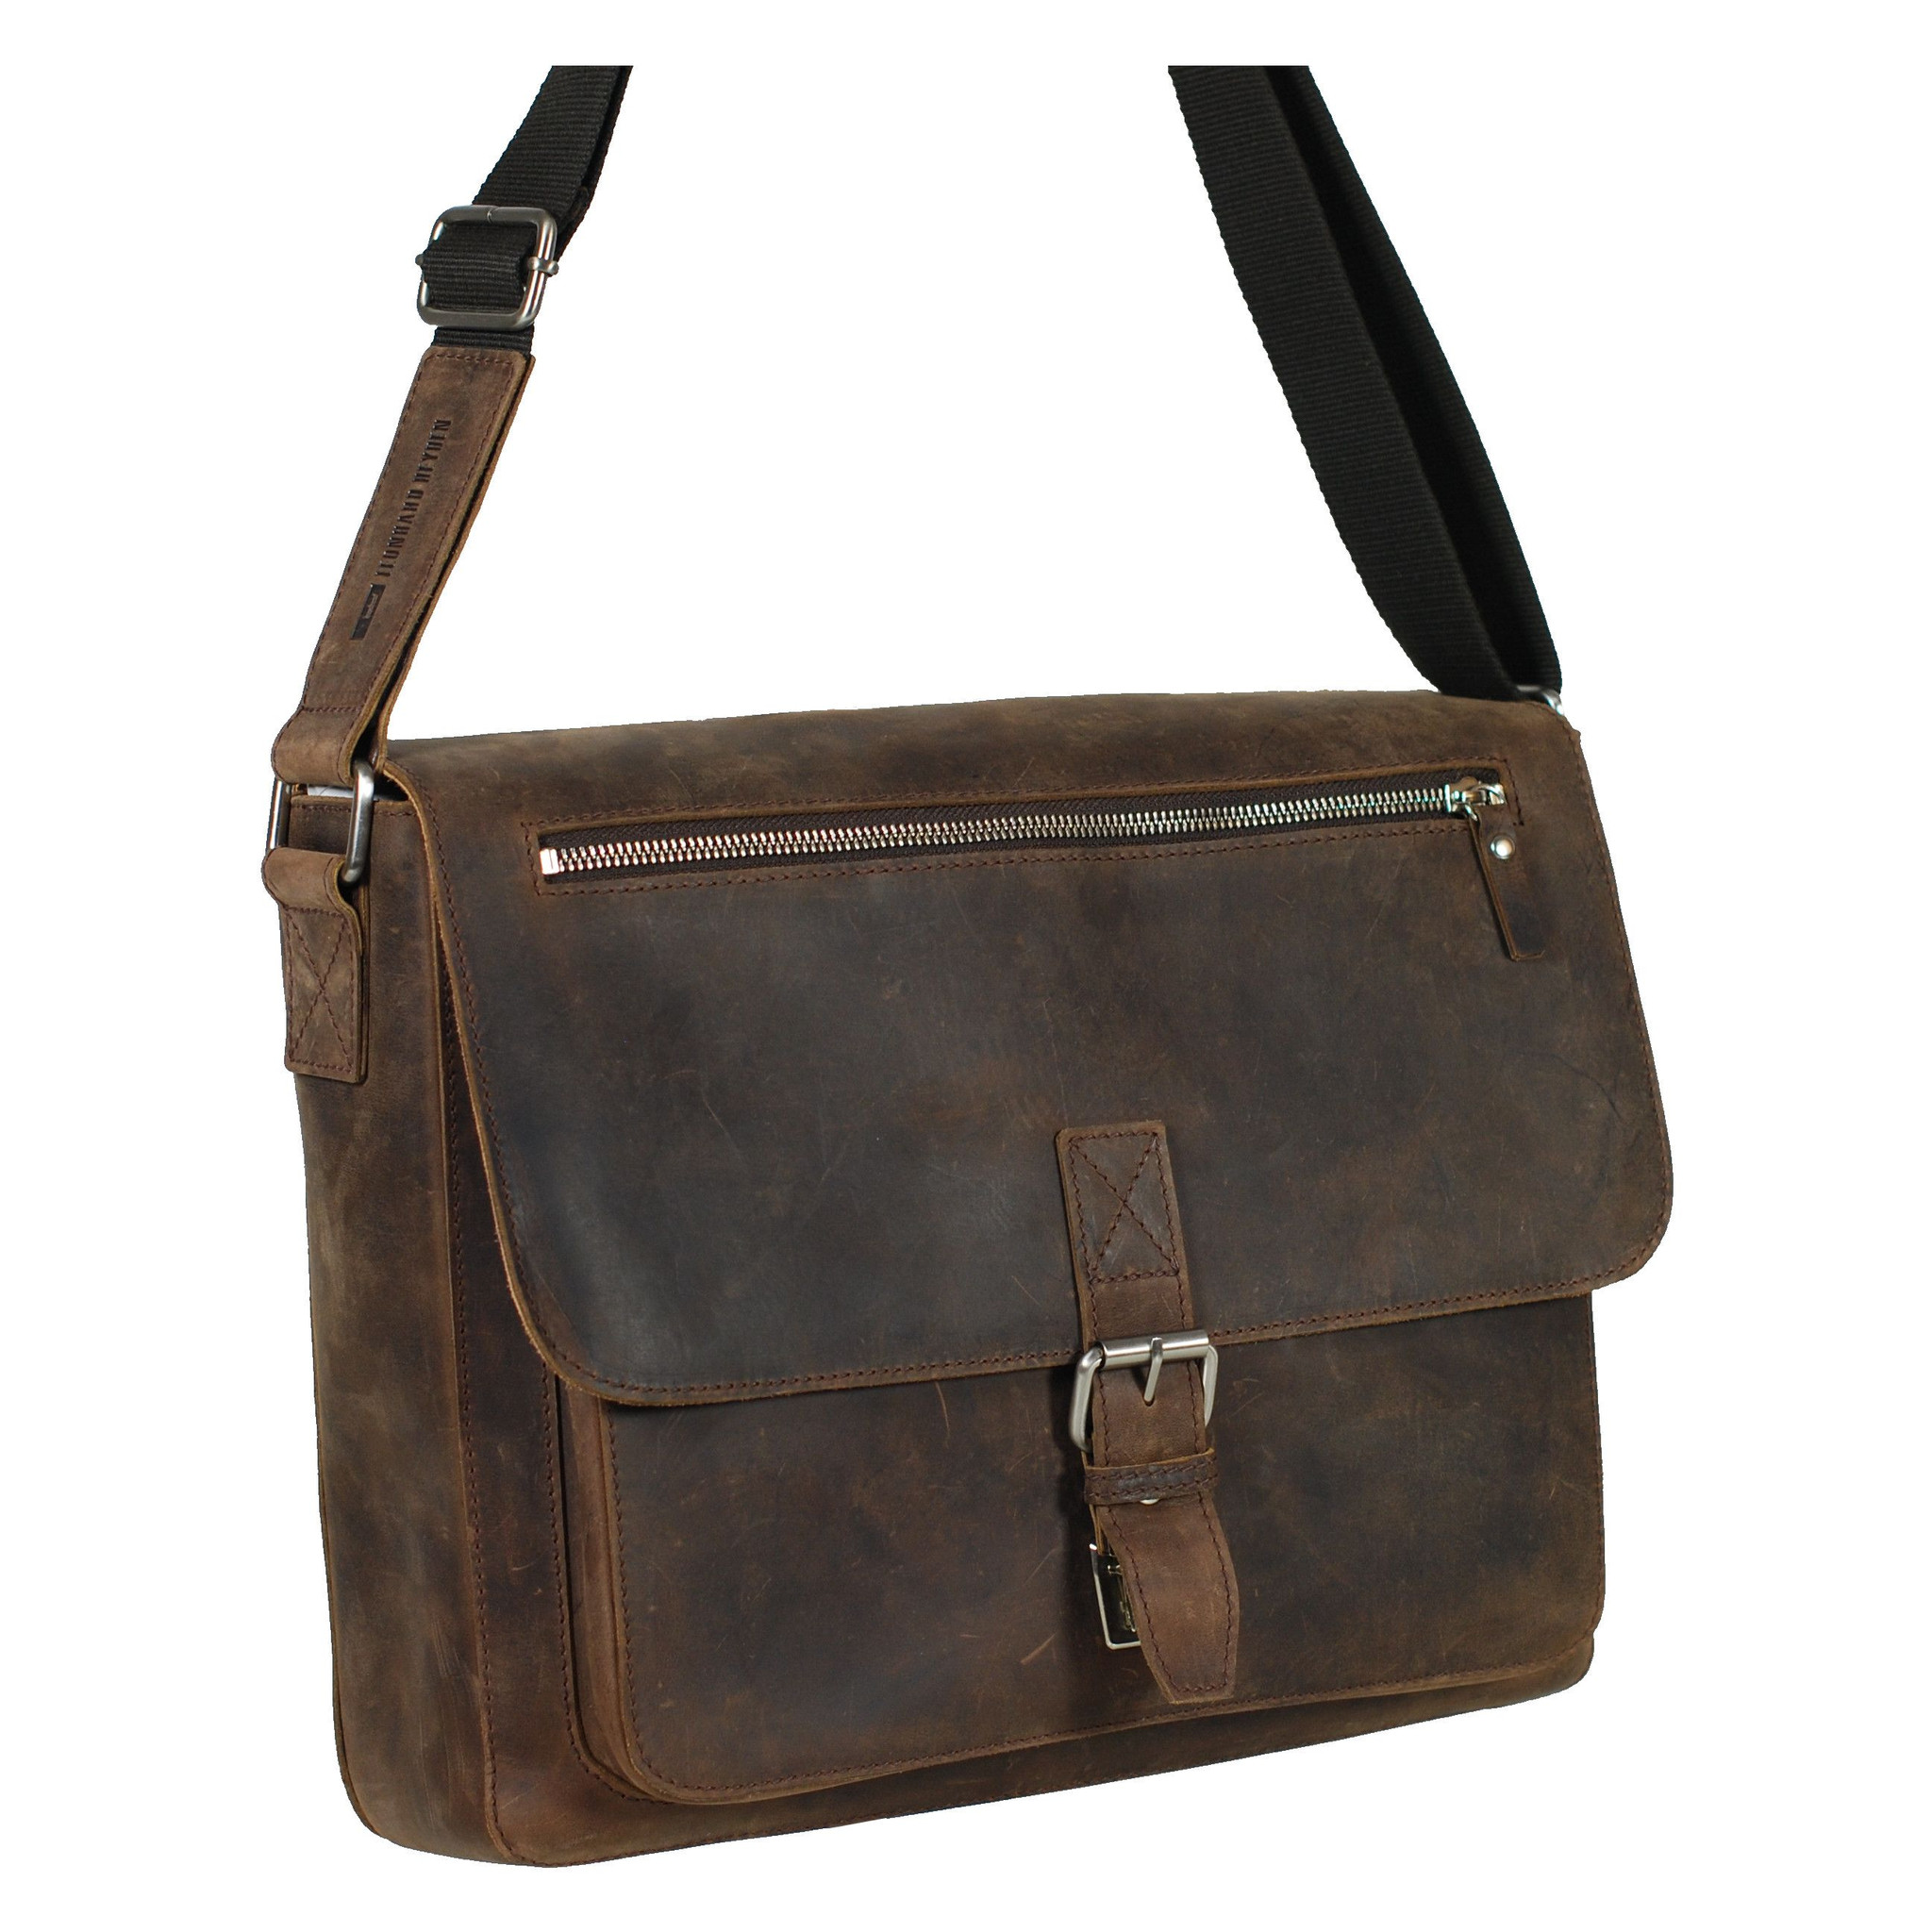 "Leonhard Heyden Salisbury Leather Messenger Bag with 13"" Laptop Compartment"